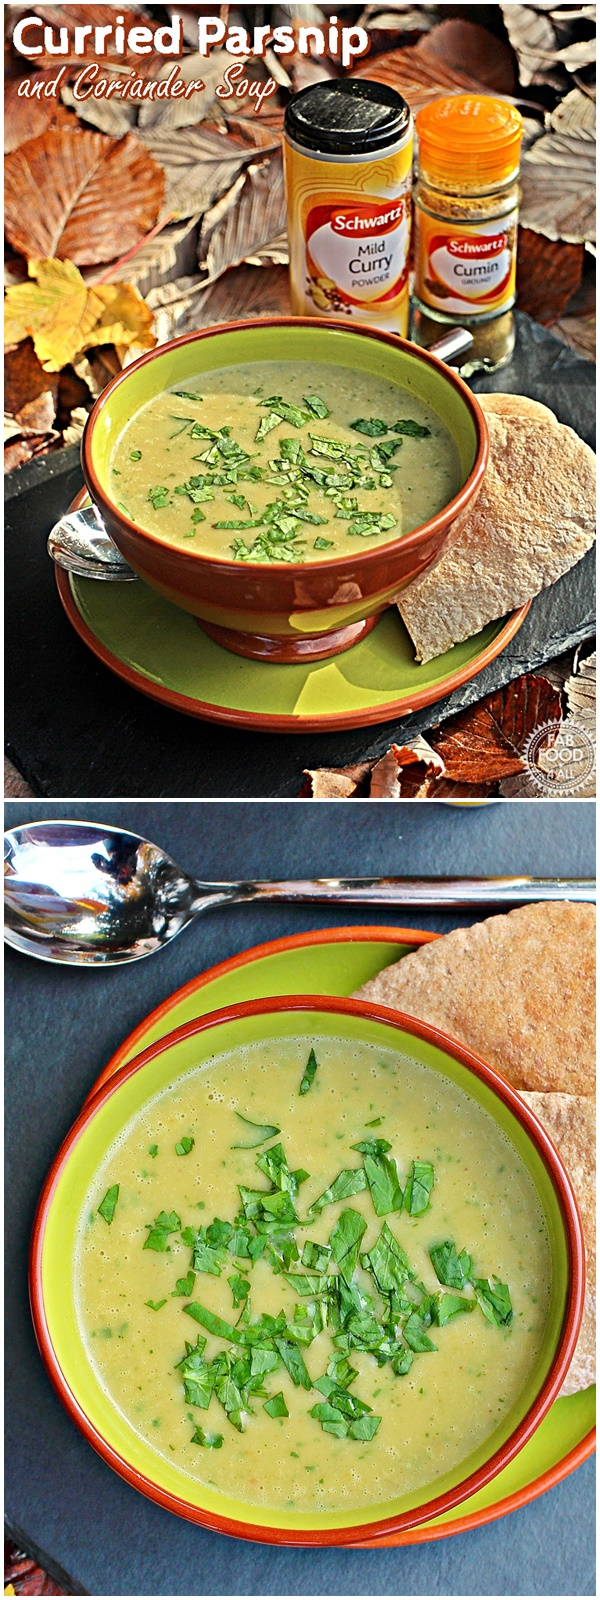 Curried Parsnip and Coriander Soup with red chilli, coconut milk and leaf coriander this soup is just divinely tasty! Fab Food 4 Alll